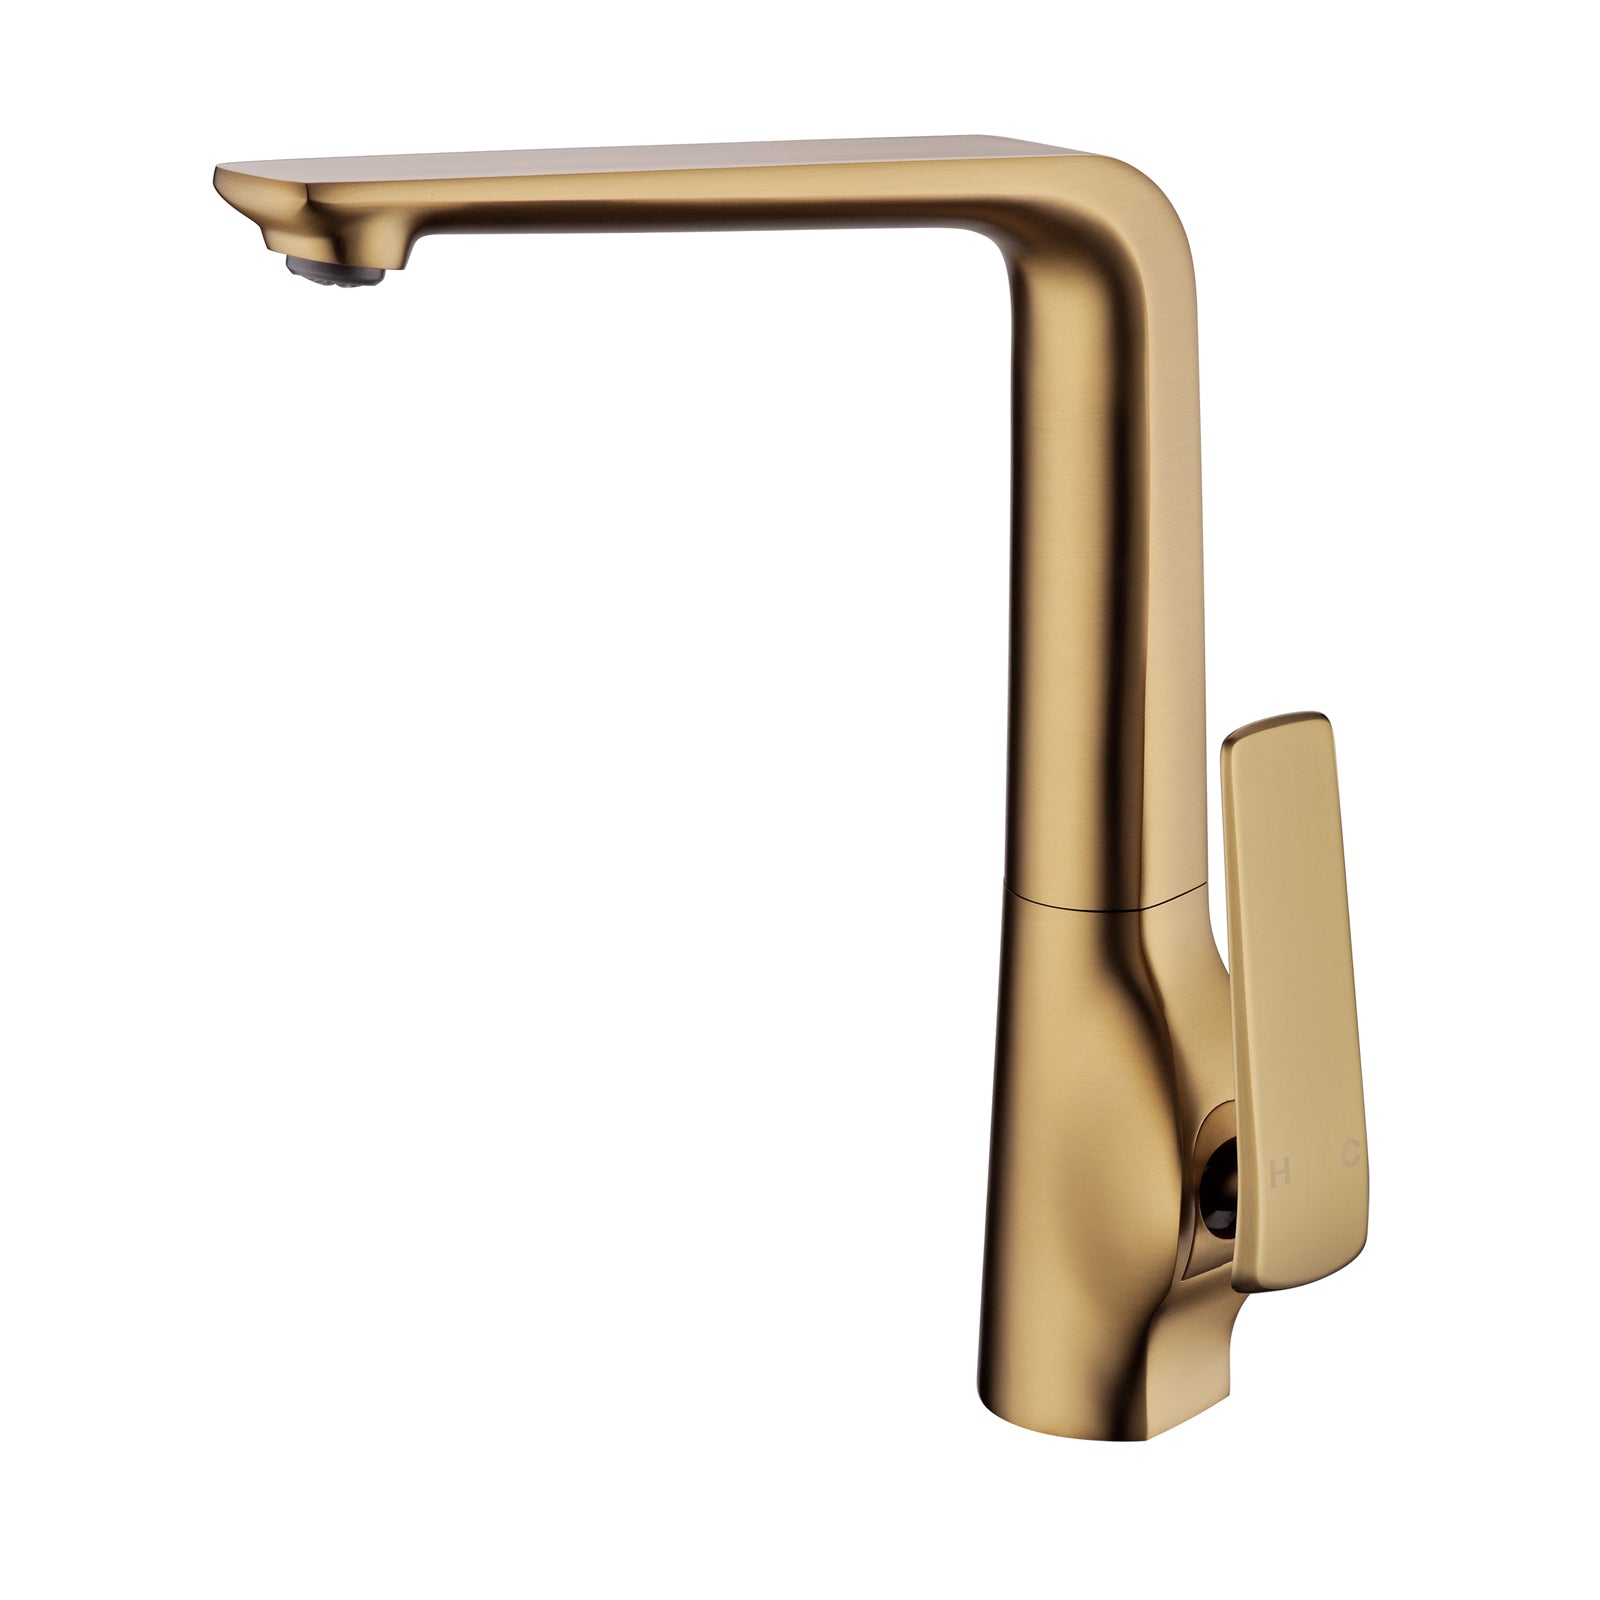 Norico Esperia Brushed Yellow Gold Kitchen Mixer